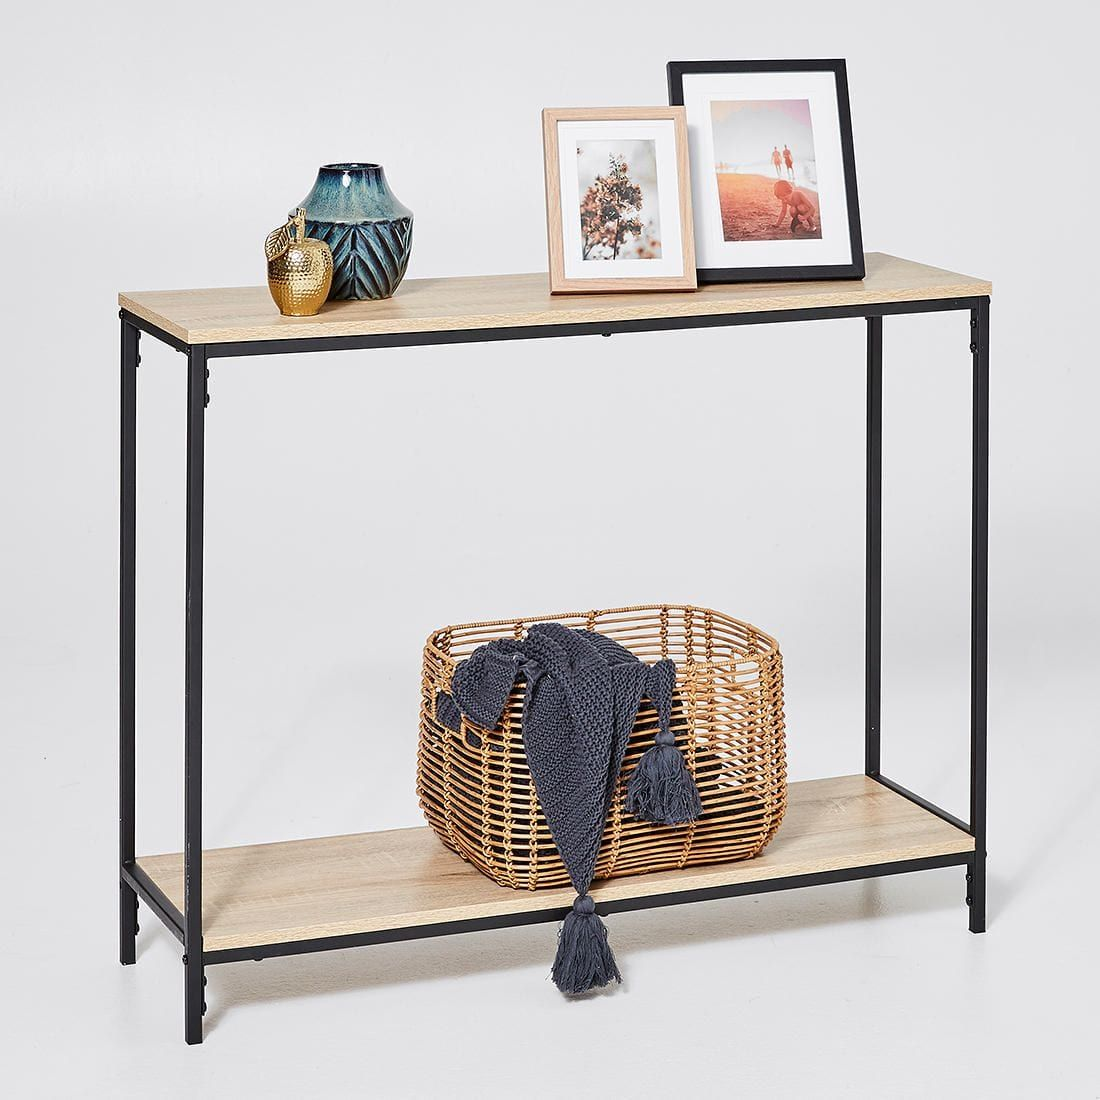 Atticus Console Table Target Australia Grey Couch Living Room Hallway Console Console Table